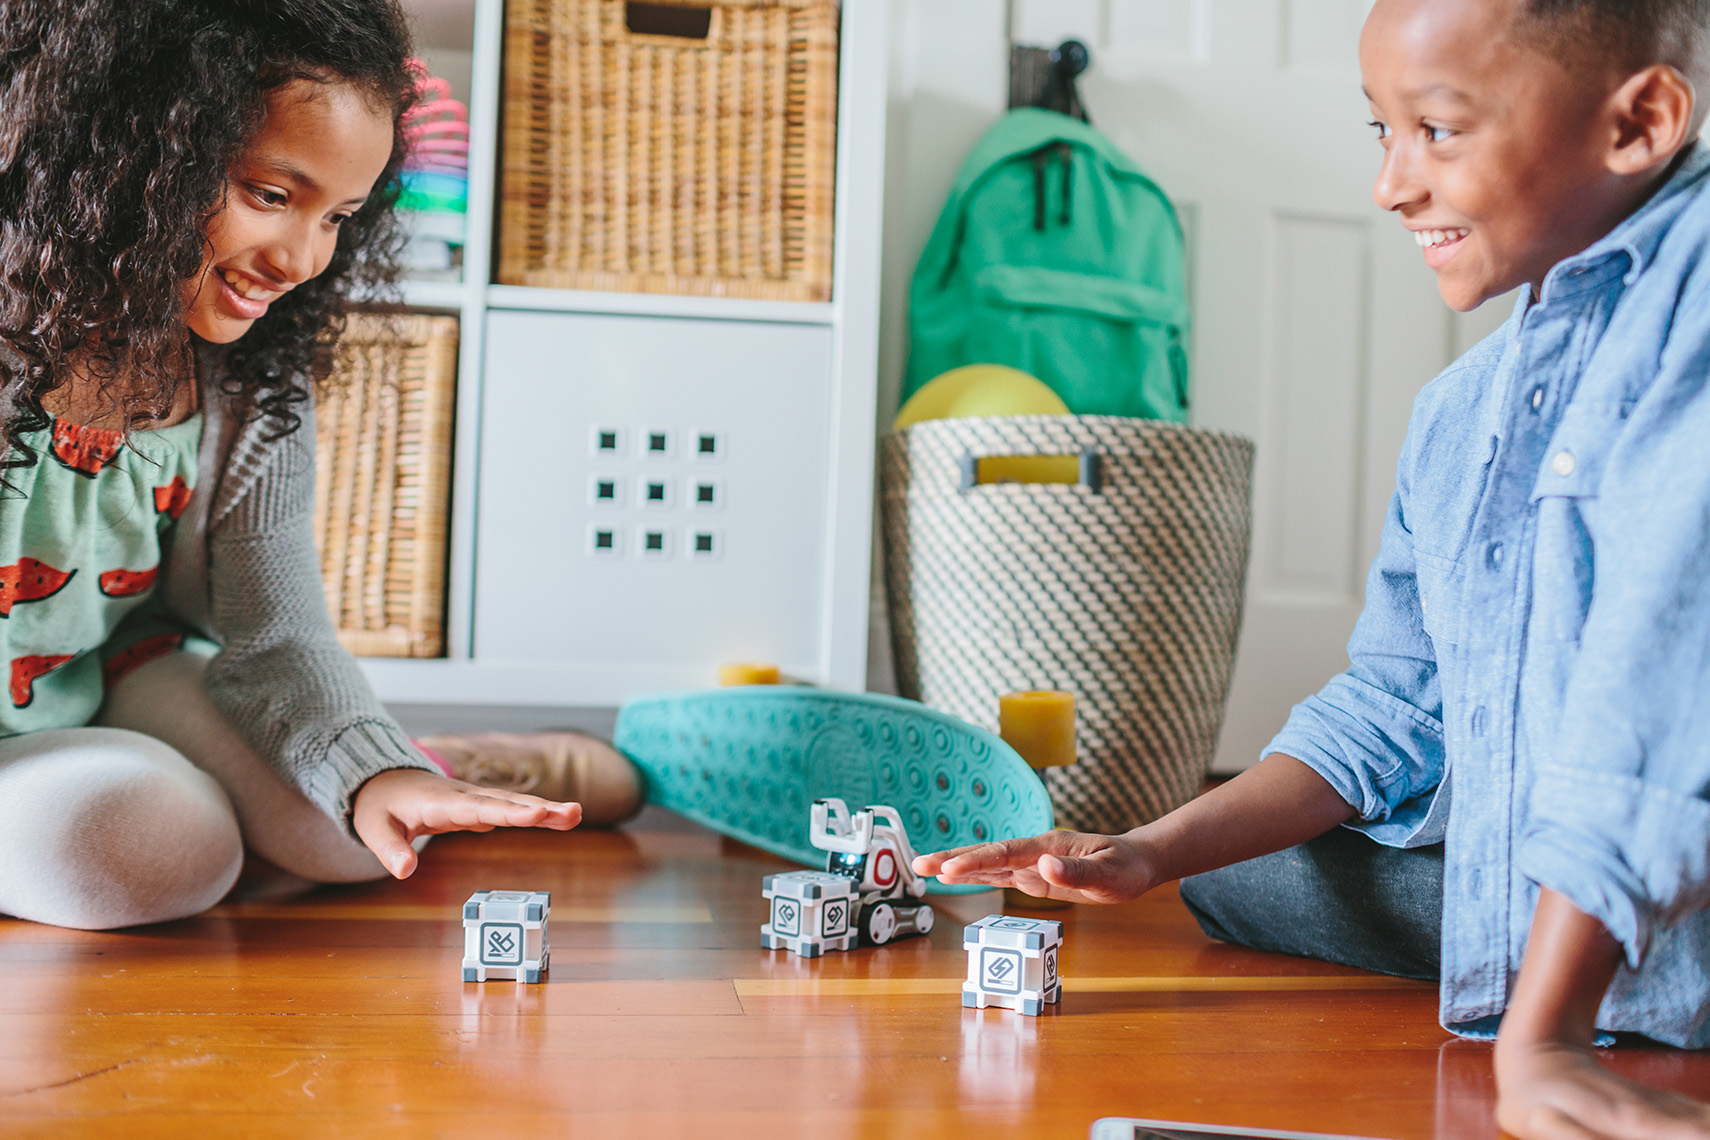 Kids play with Cozmo Robot made by toy company Anki in this lifestyle photoshoot by Leah Verwey